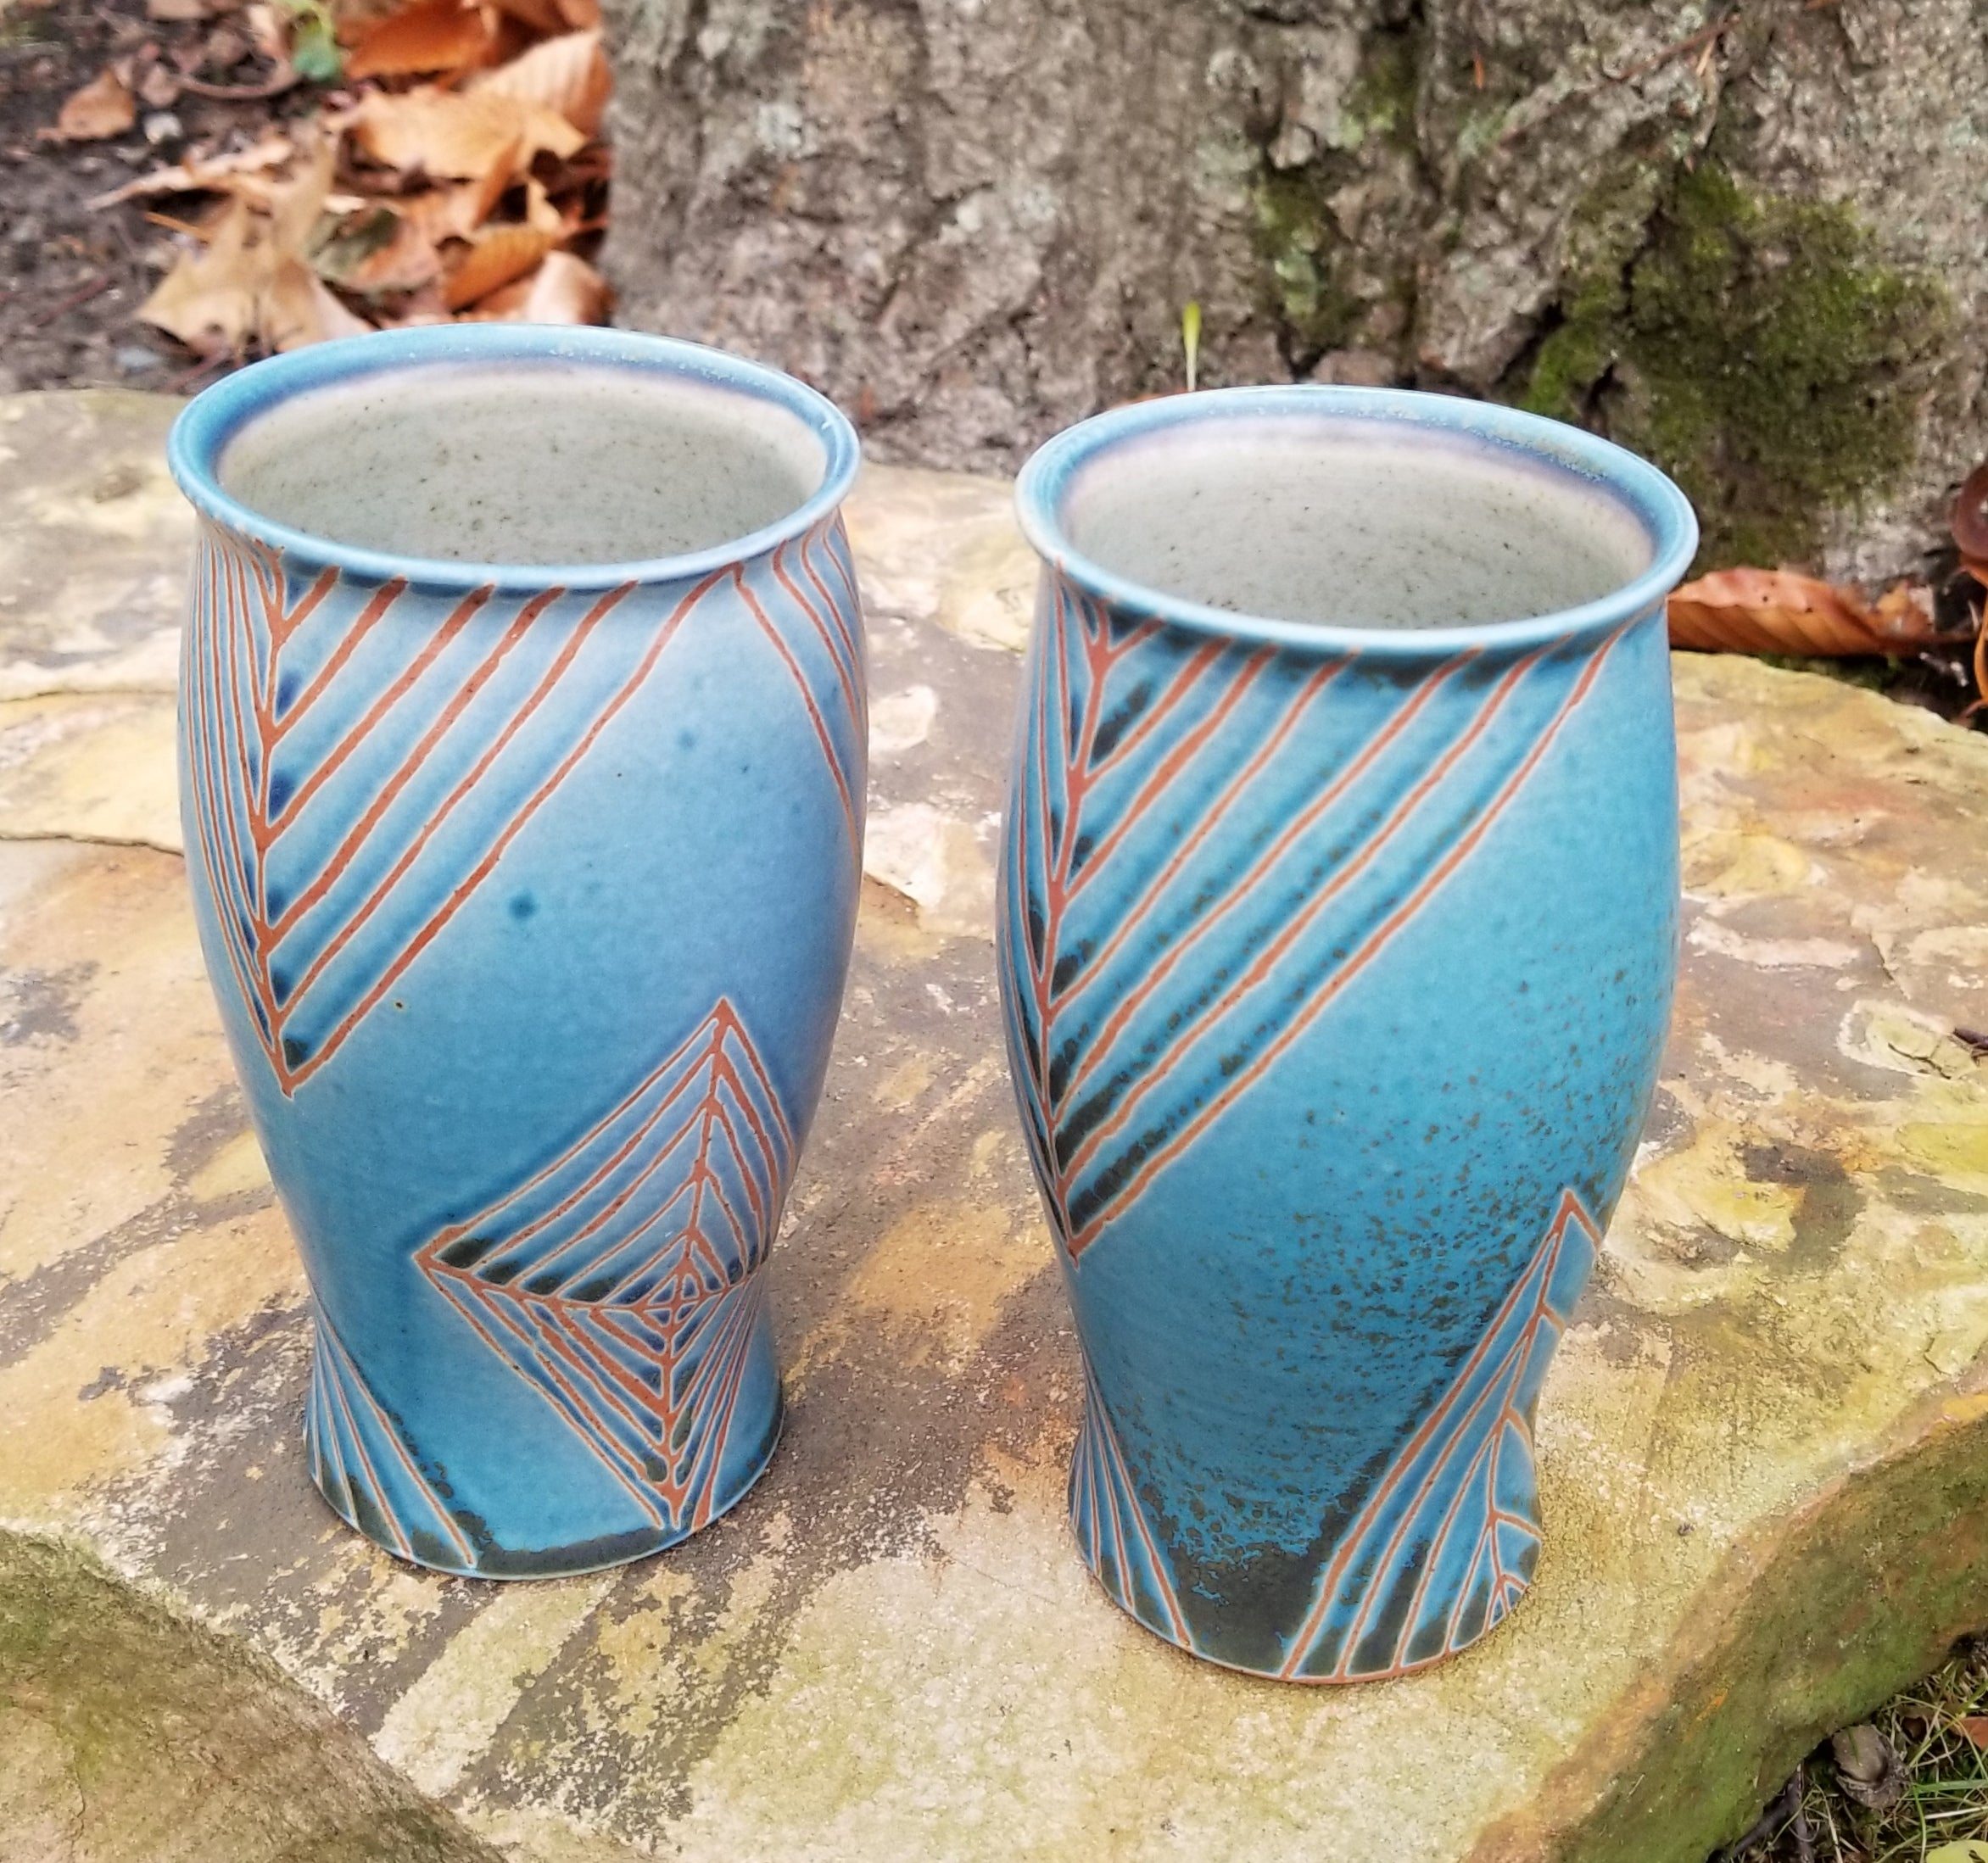 Tumbler in Blue and Orange Quadrilateral Pattern